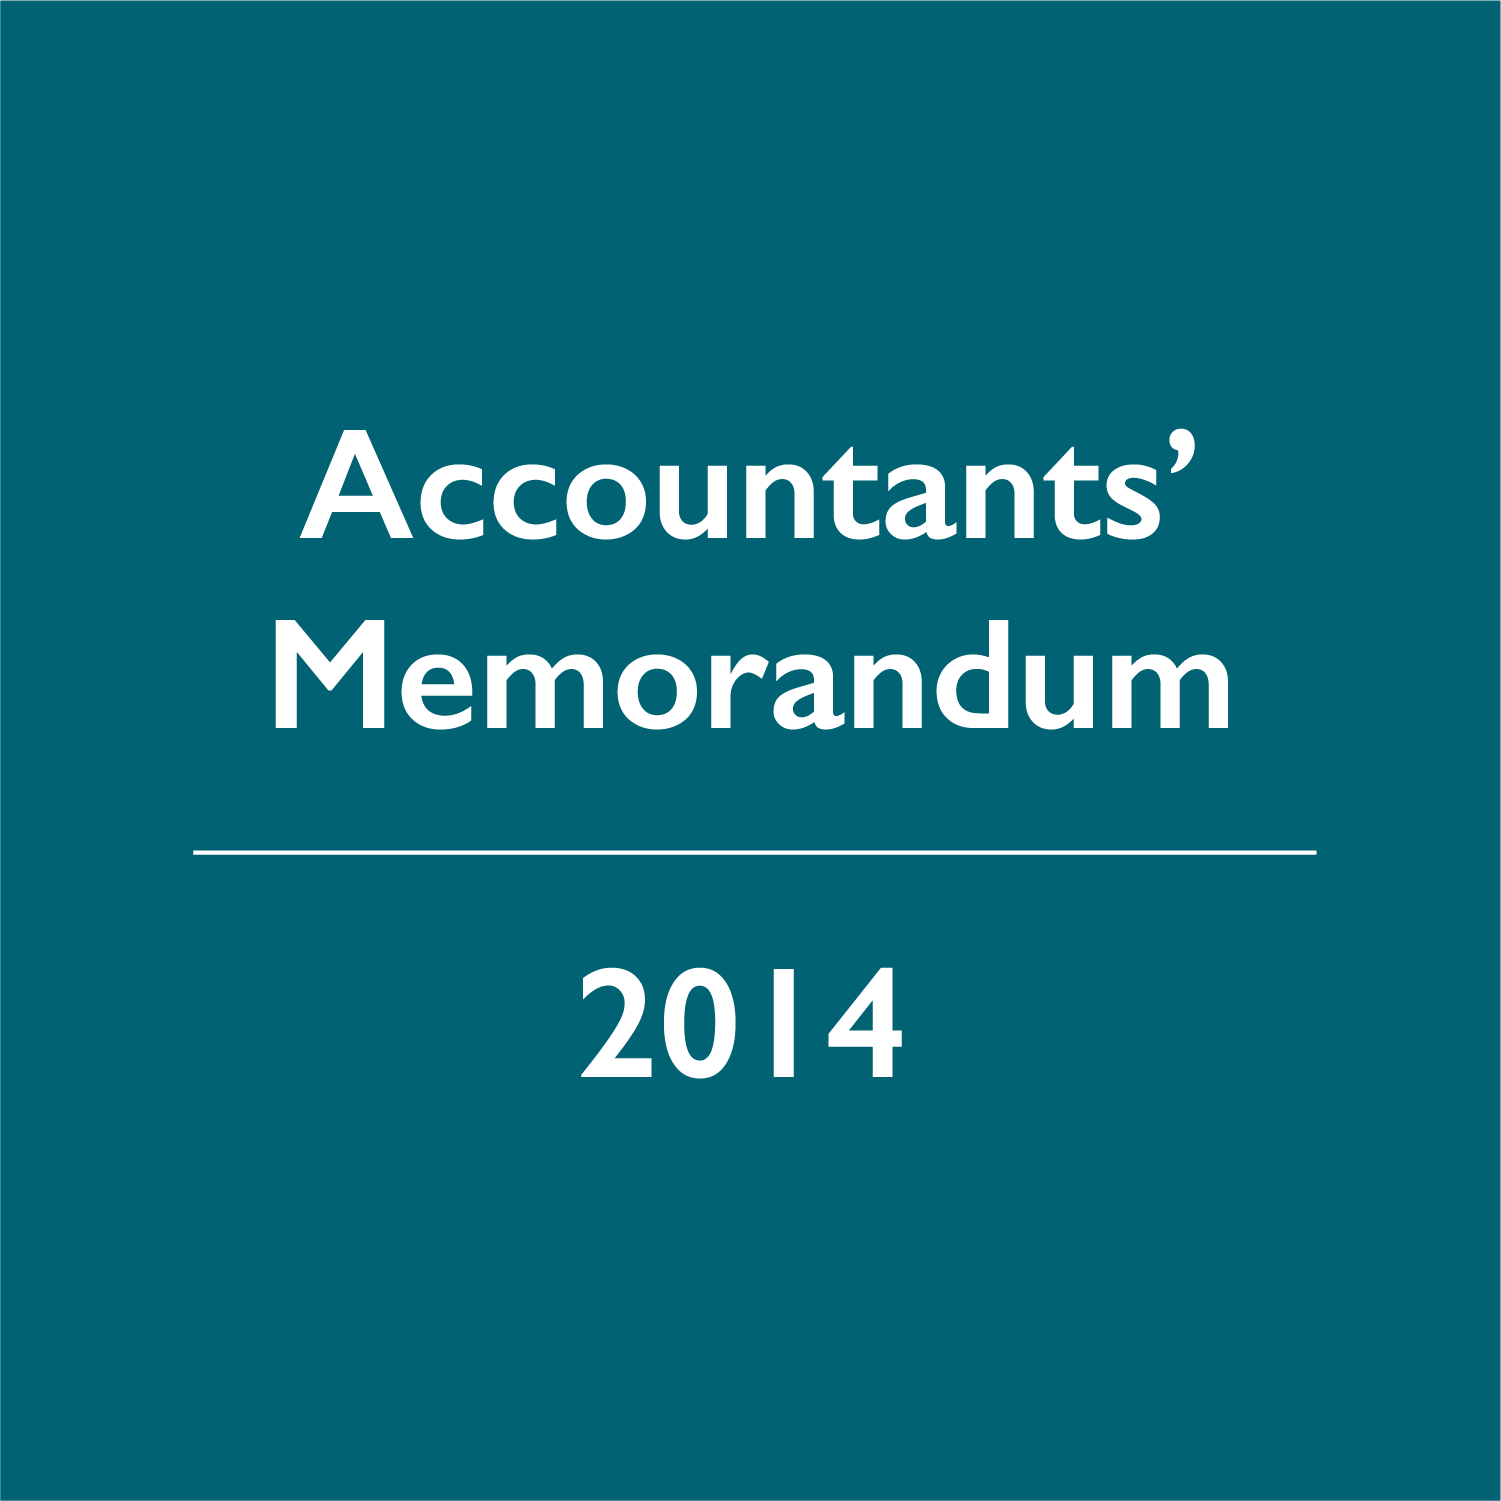 2014 Accountants' Memorandum